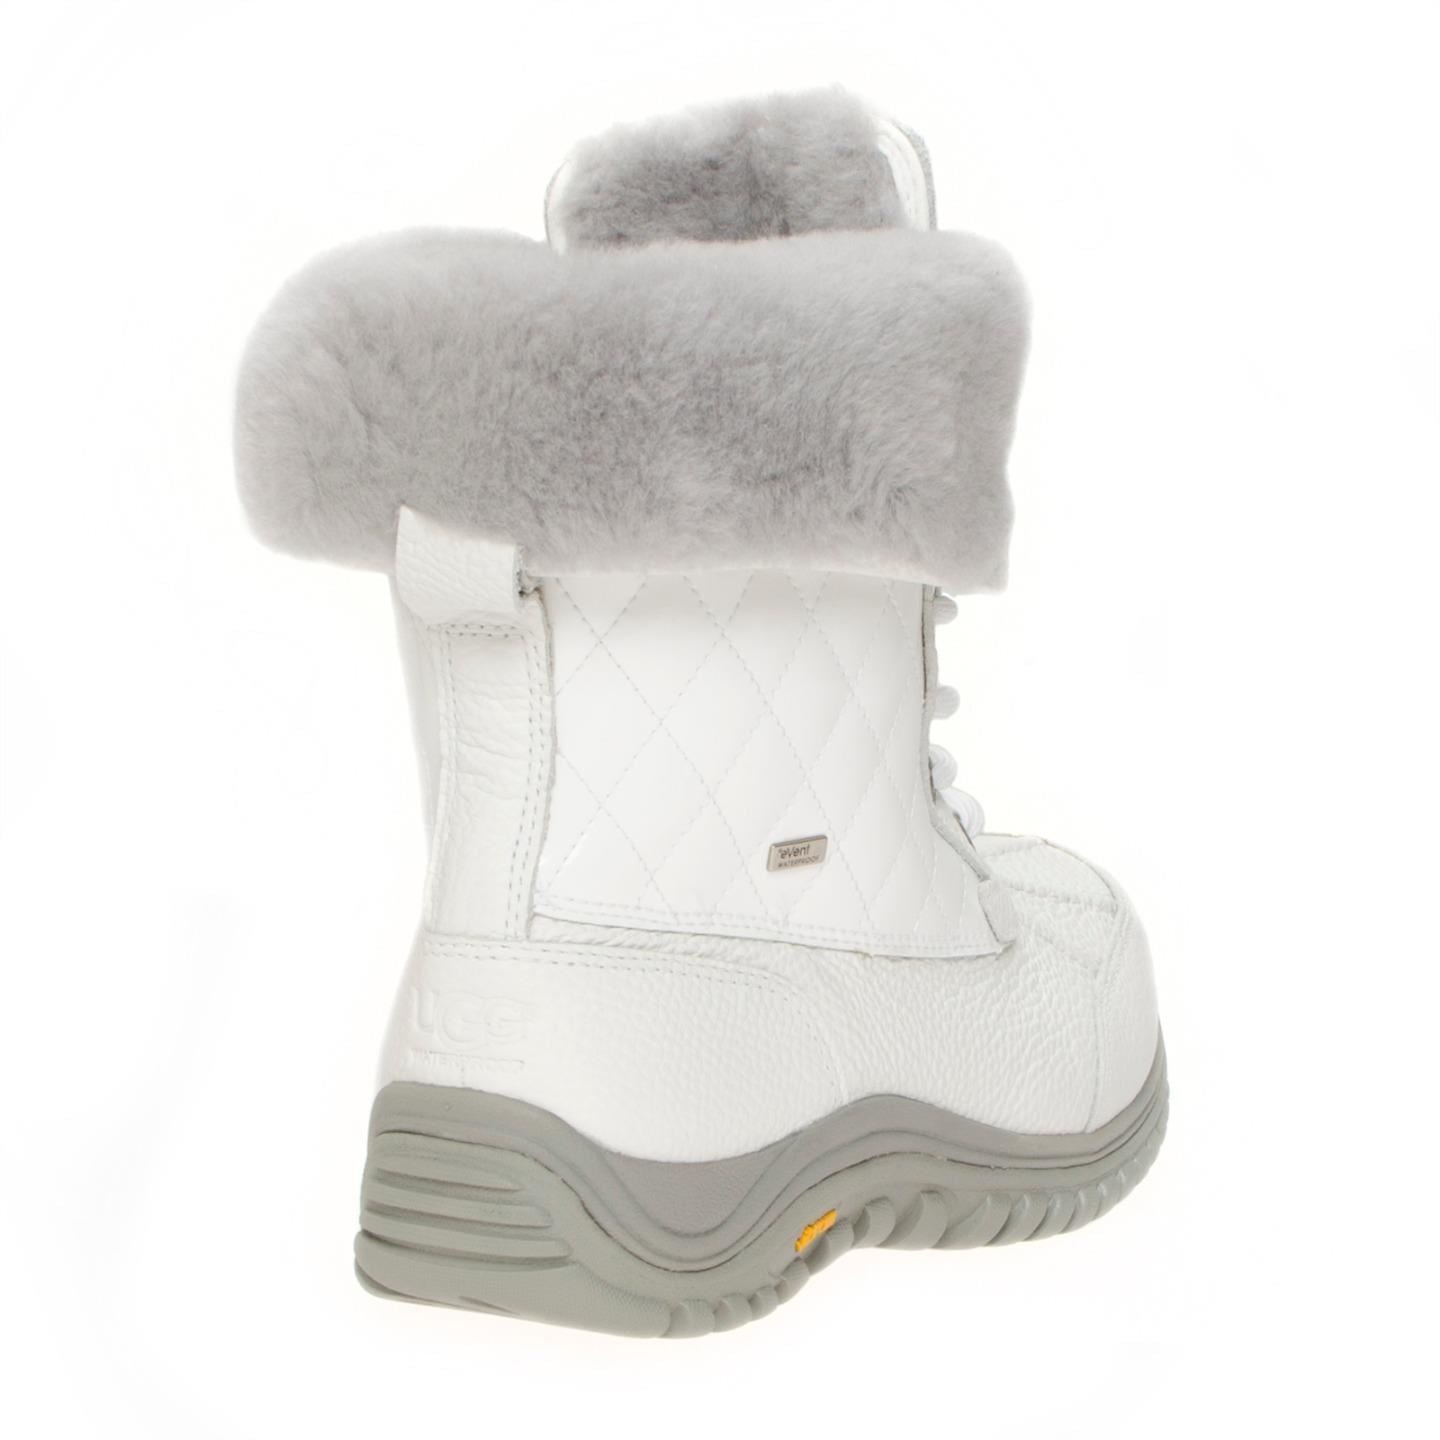 UGG Adirondack Quilted White Boots